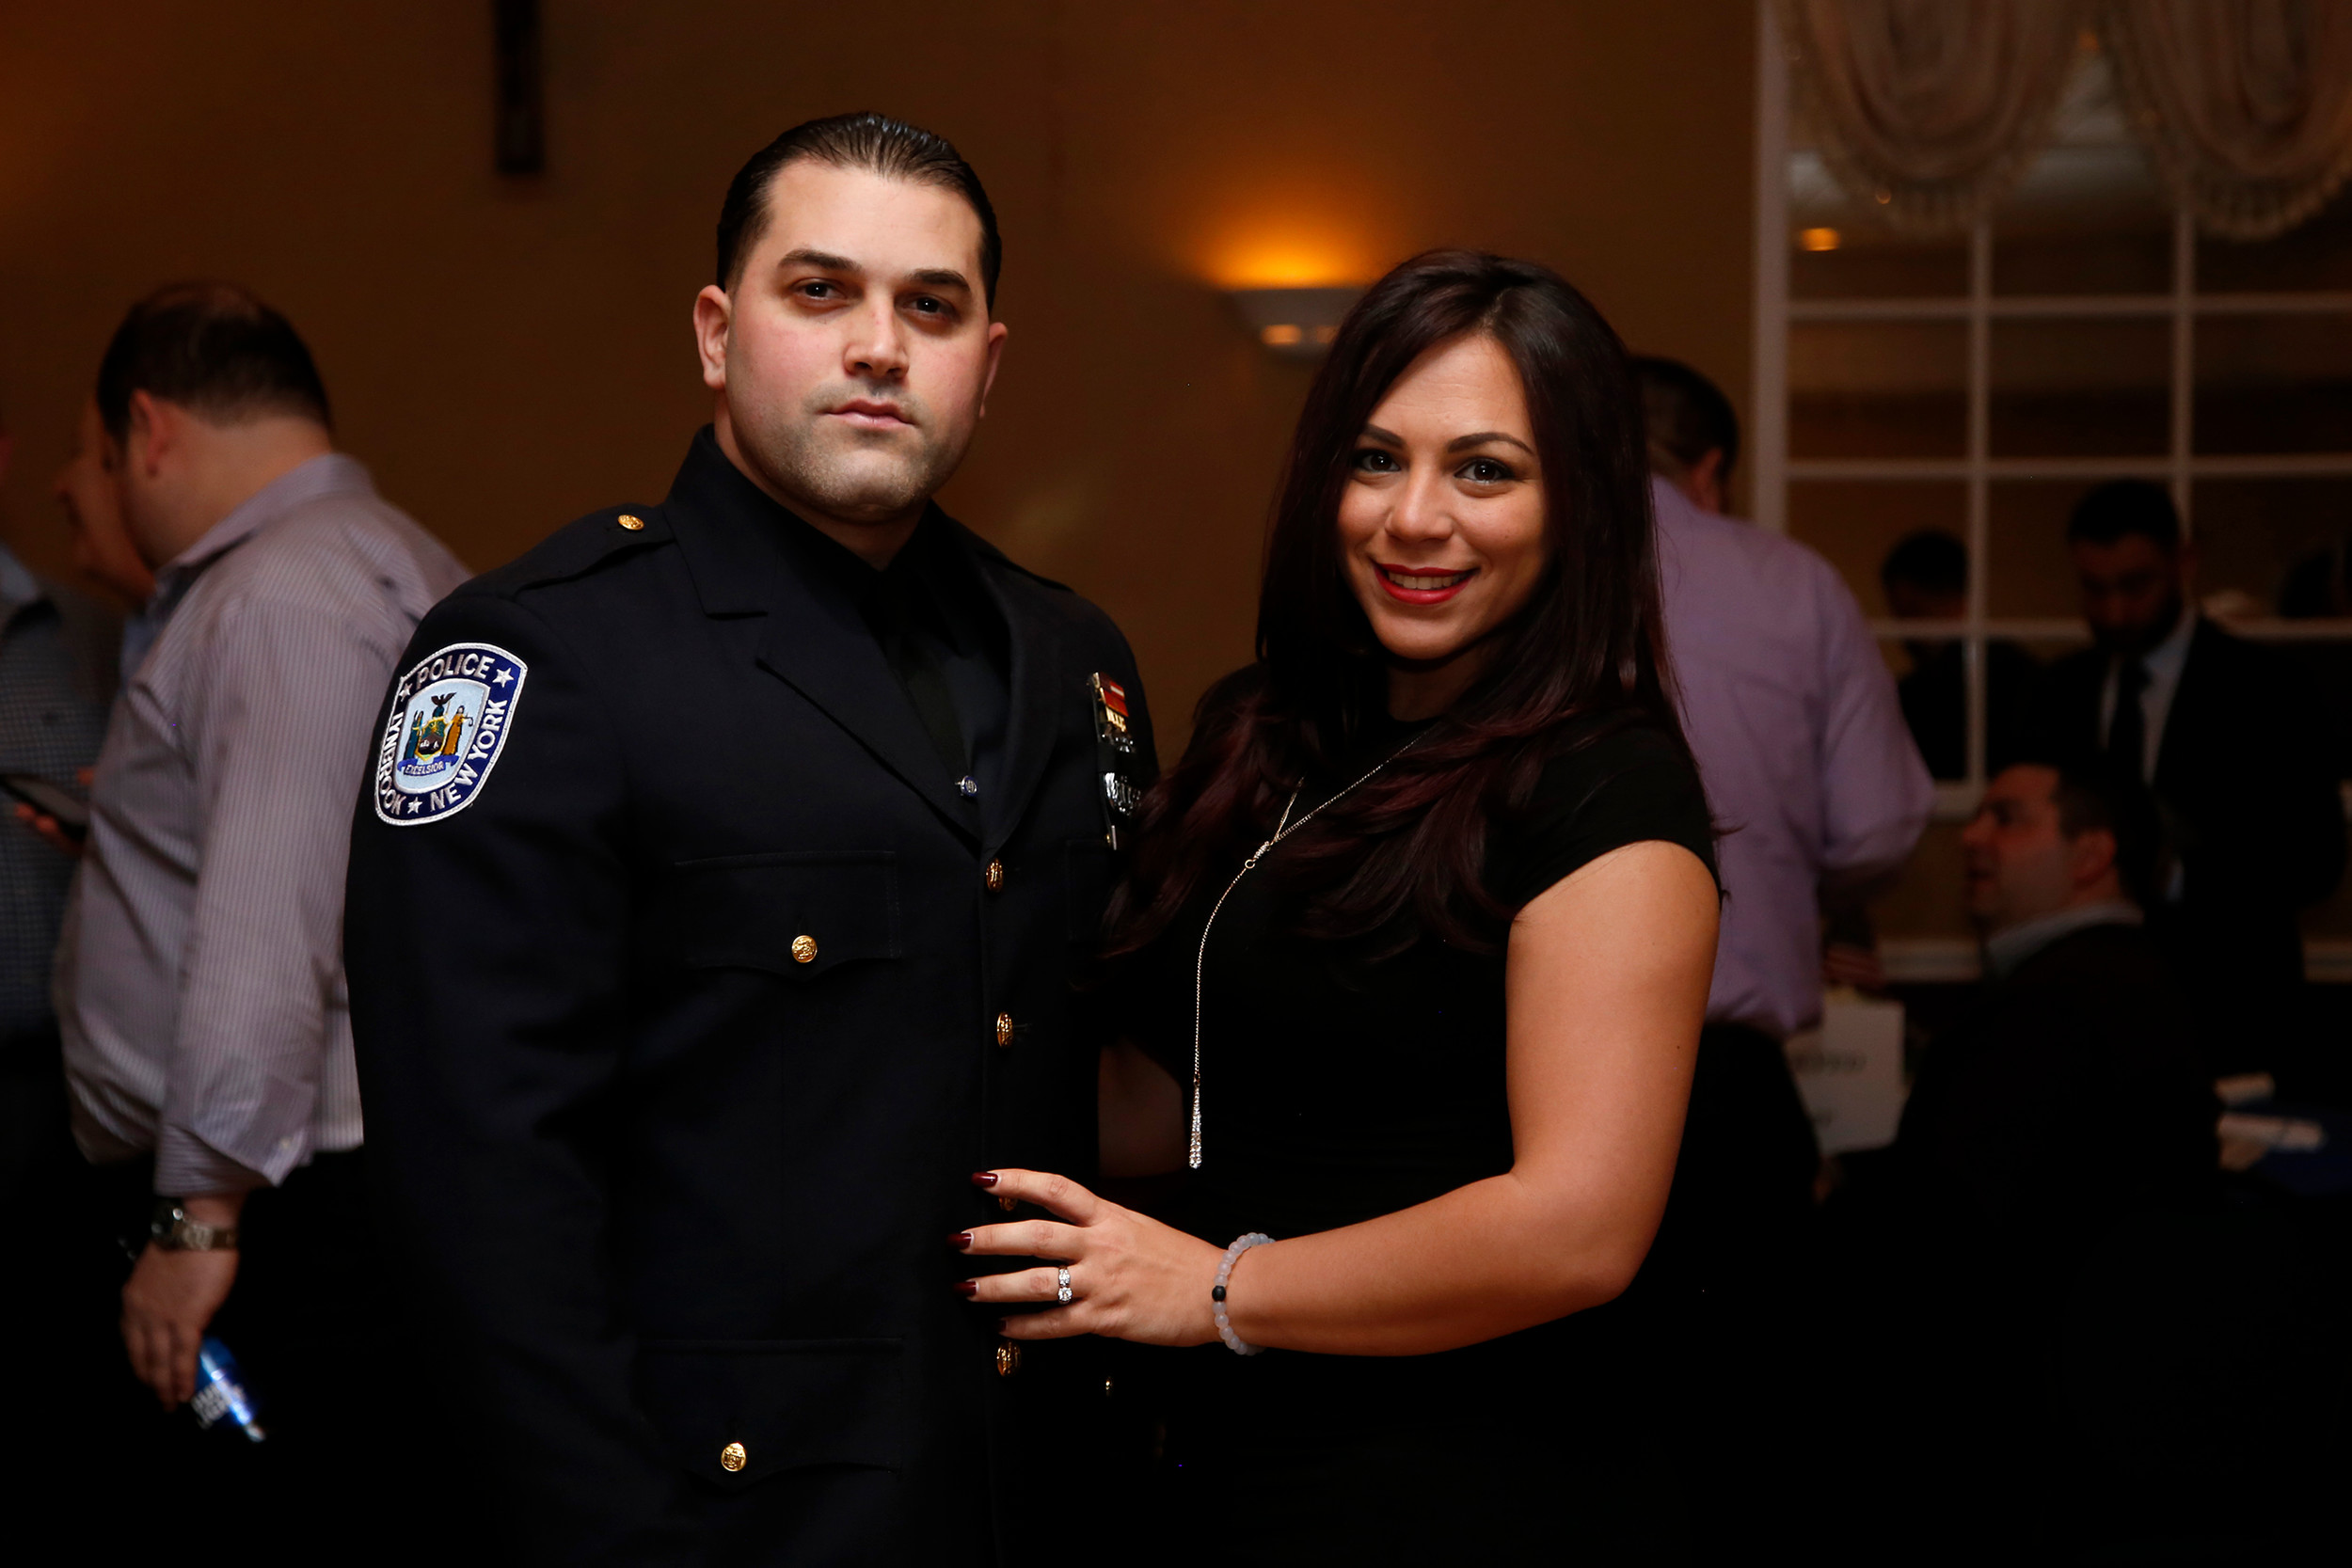 Officer Christopher Lopez, seen here with his fiancé Christina Ruocco, was named Lynbrook Police Department First Responder of the Year.